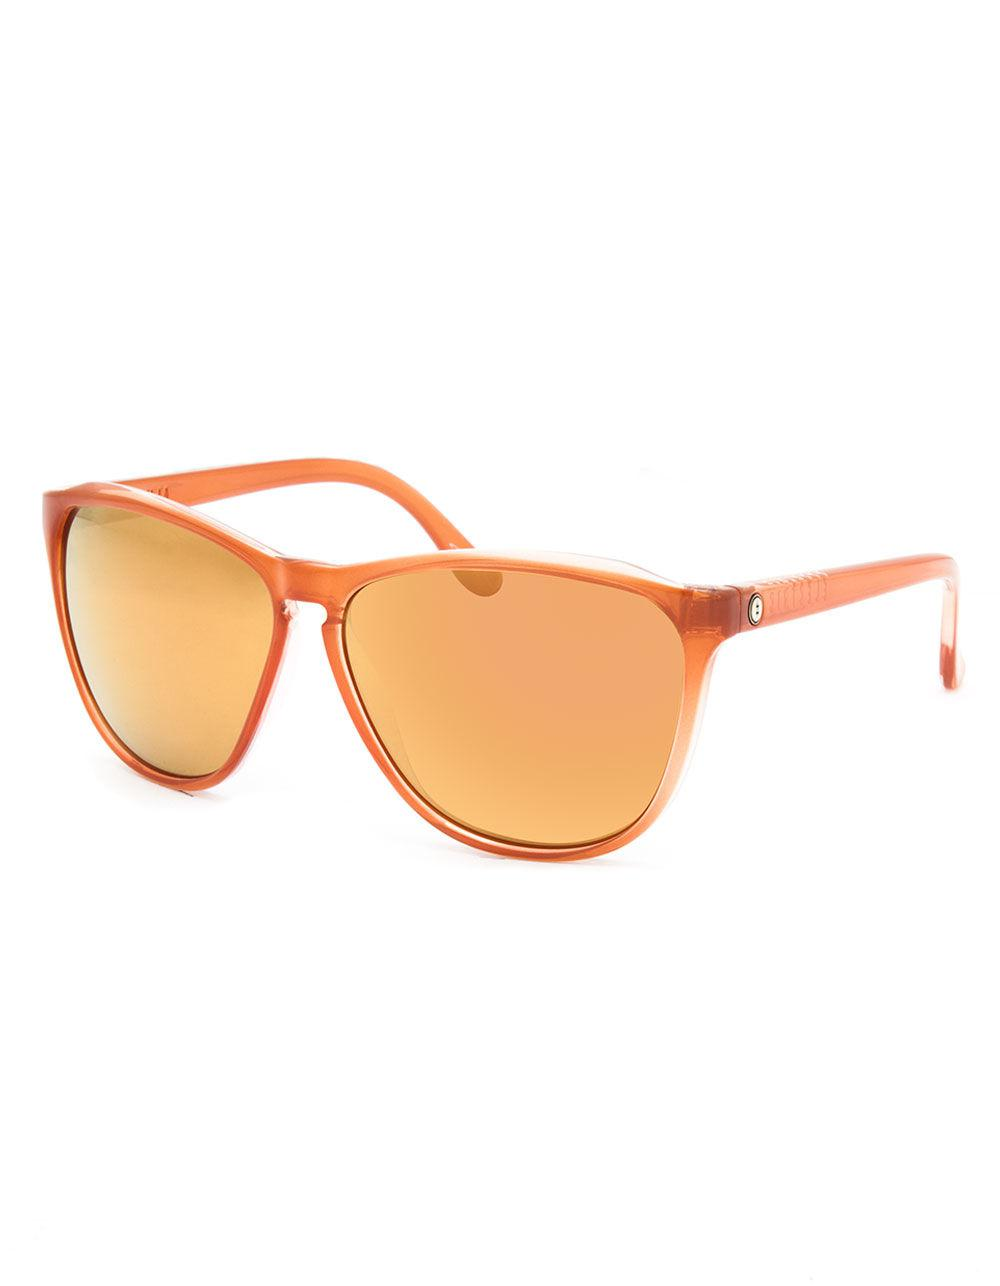 d32b4629d35 Lyst - Electric Encelia Womens Sunglasses